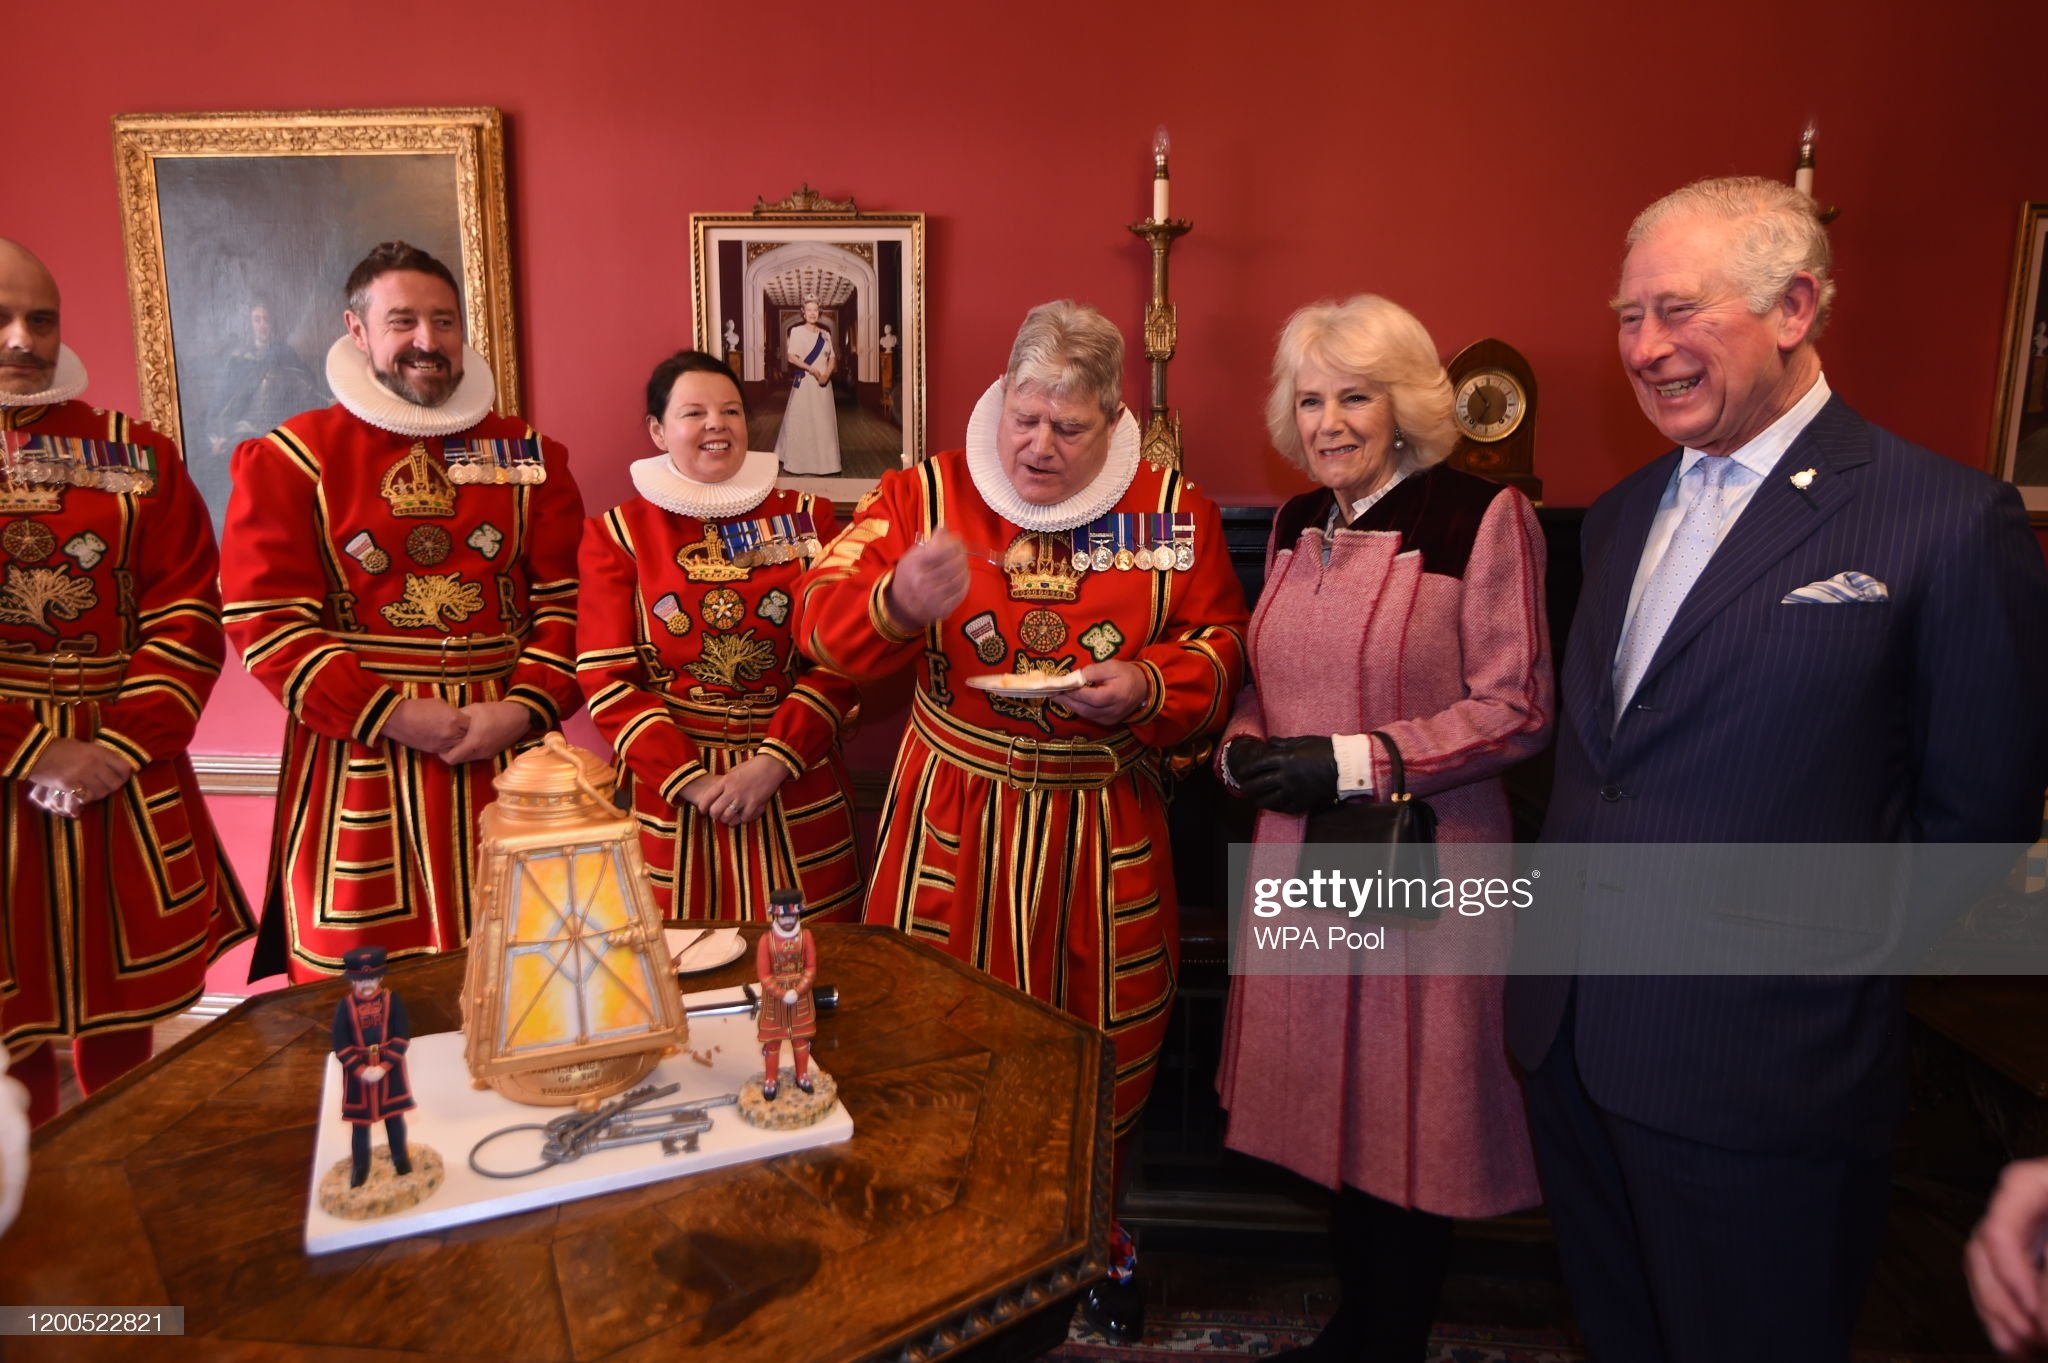 prince-charles-prince-of-wales-and-camilla-duchess-of-cornwall-visit-picture-id1200522821